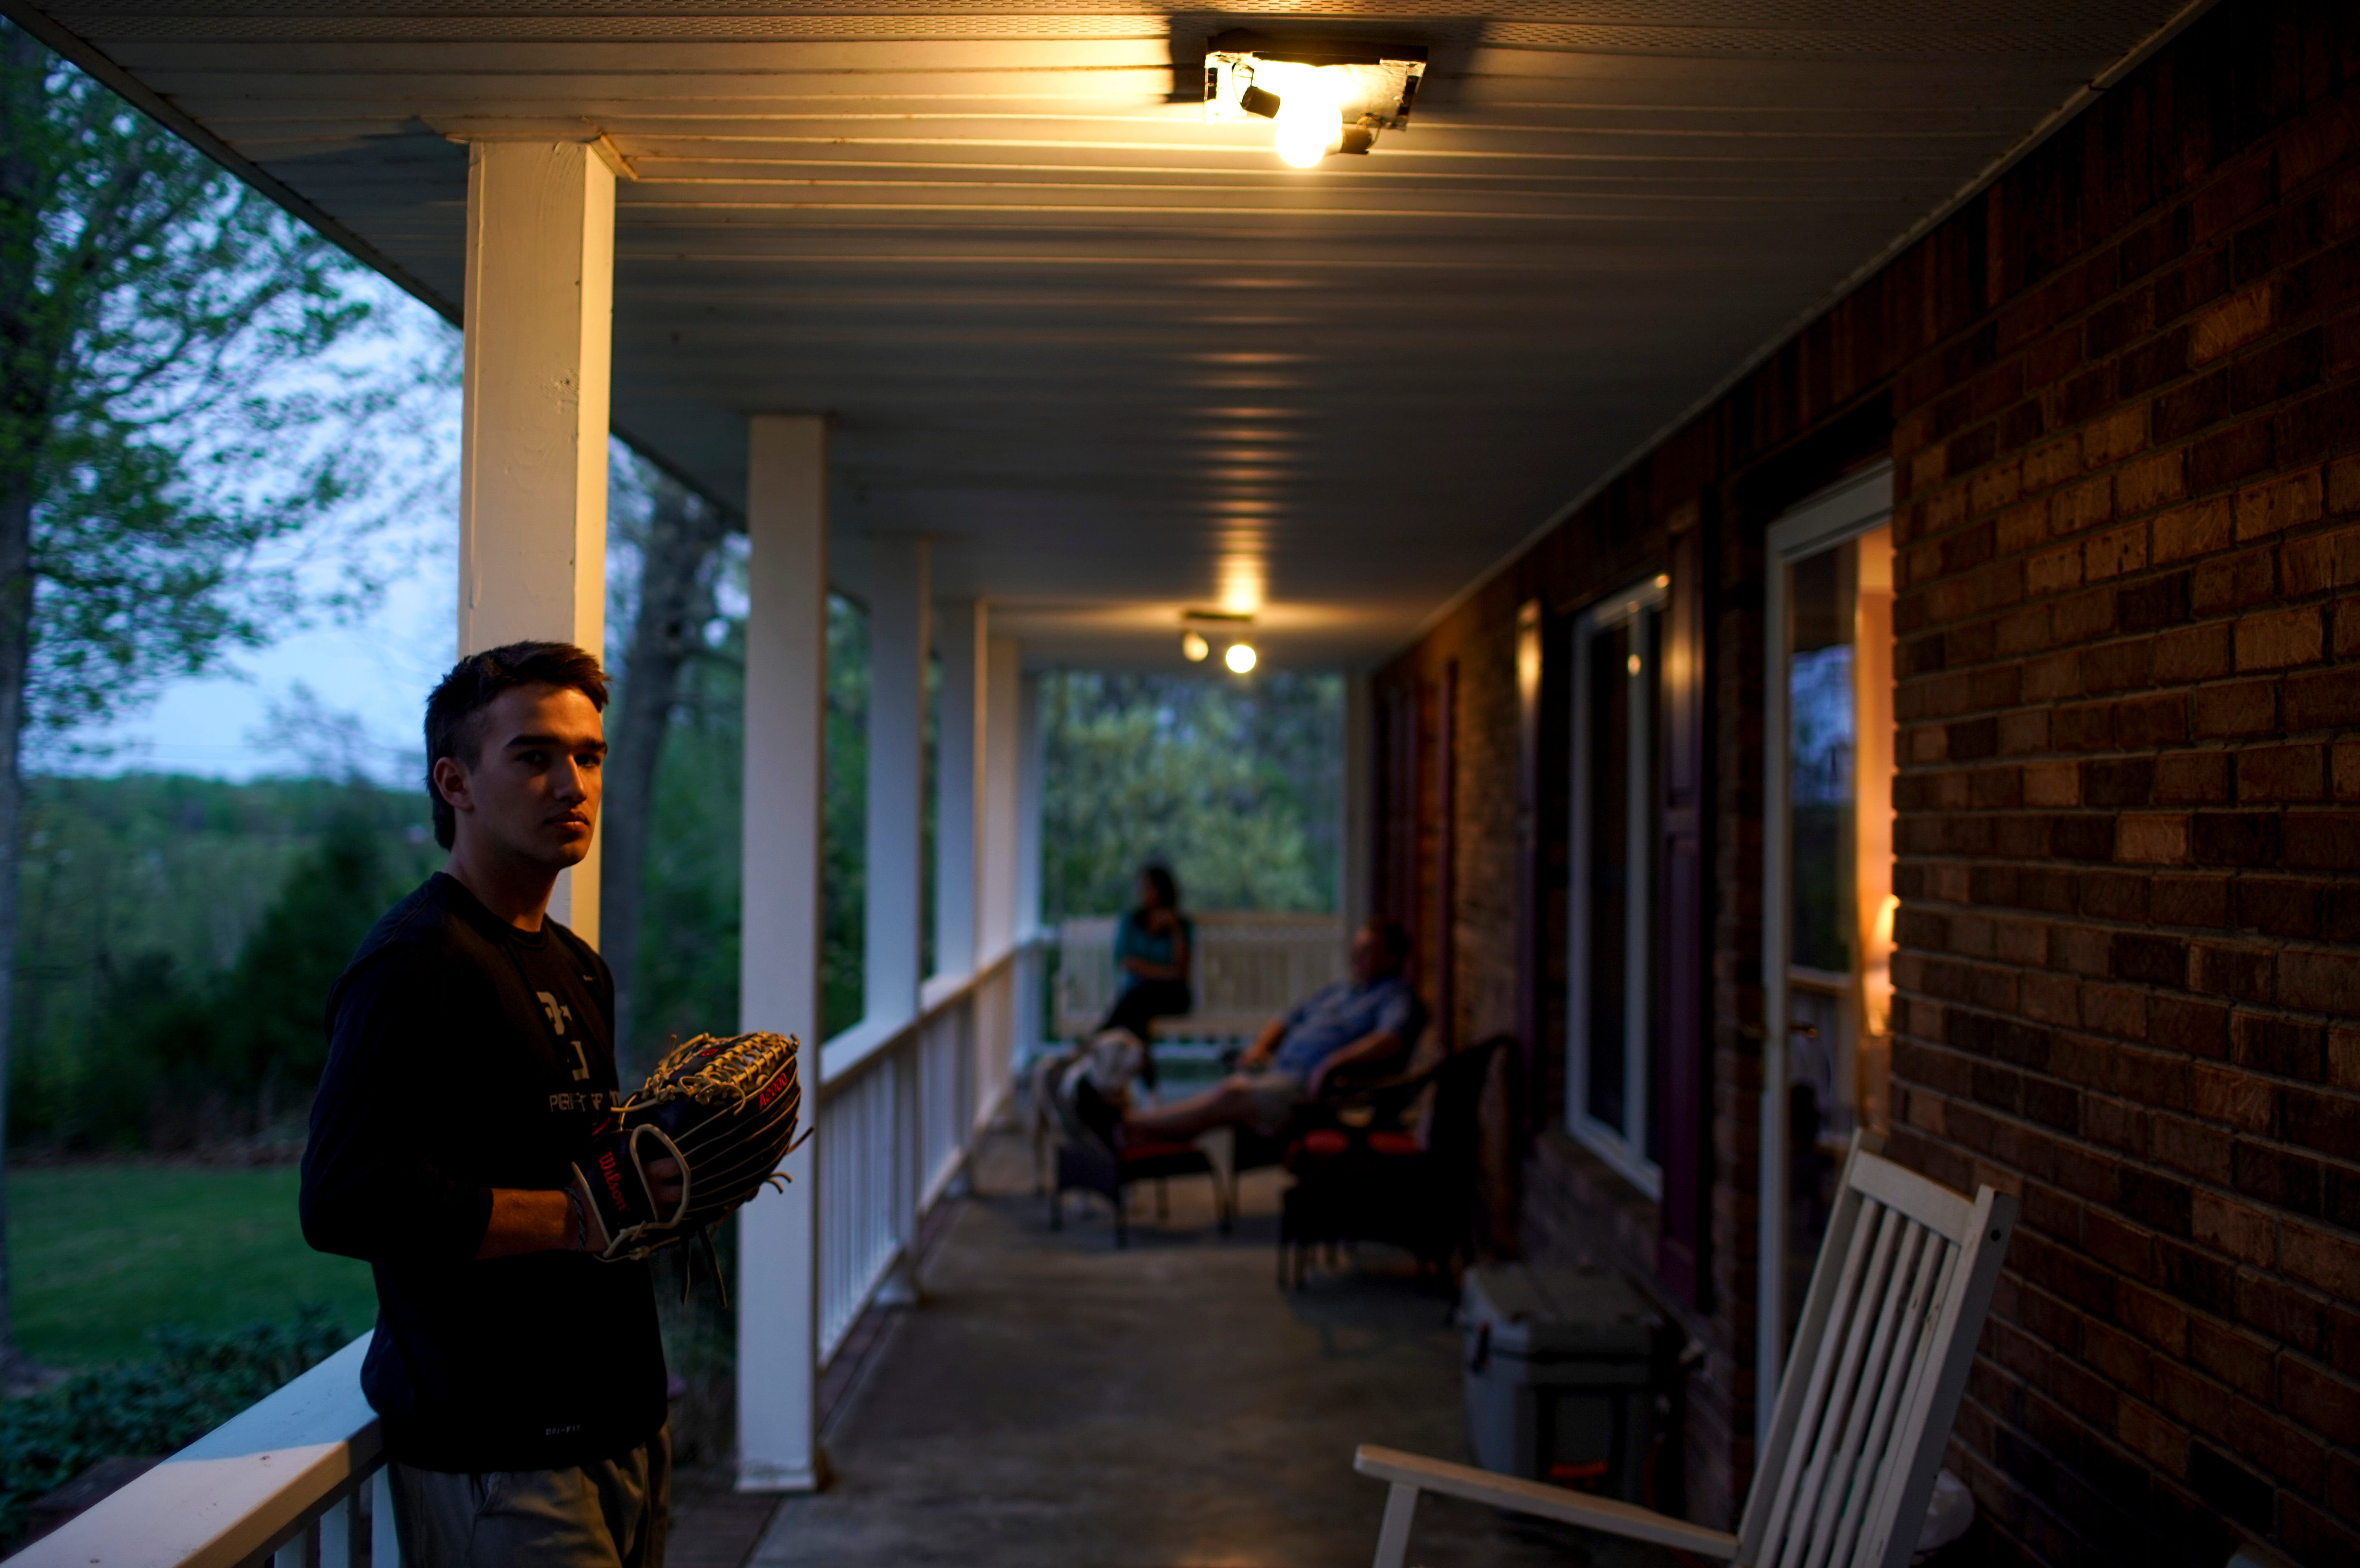 Cody Kirkland, a senior from Northwest who won't be able to play his last year of baseball because of the coronavirus pandemic, holds his glove on the front porch of his home in Indian Mound, Tenn., on April 11, 2020.